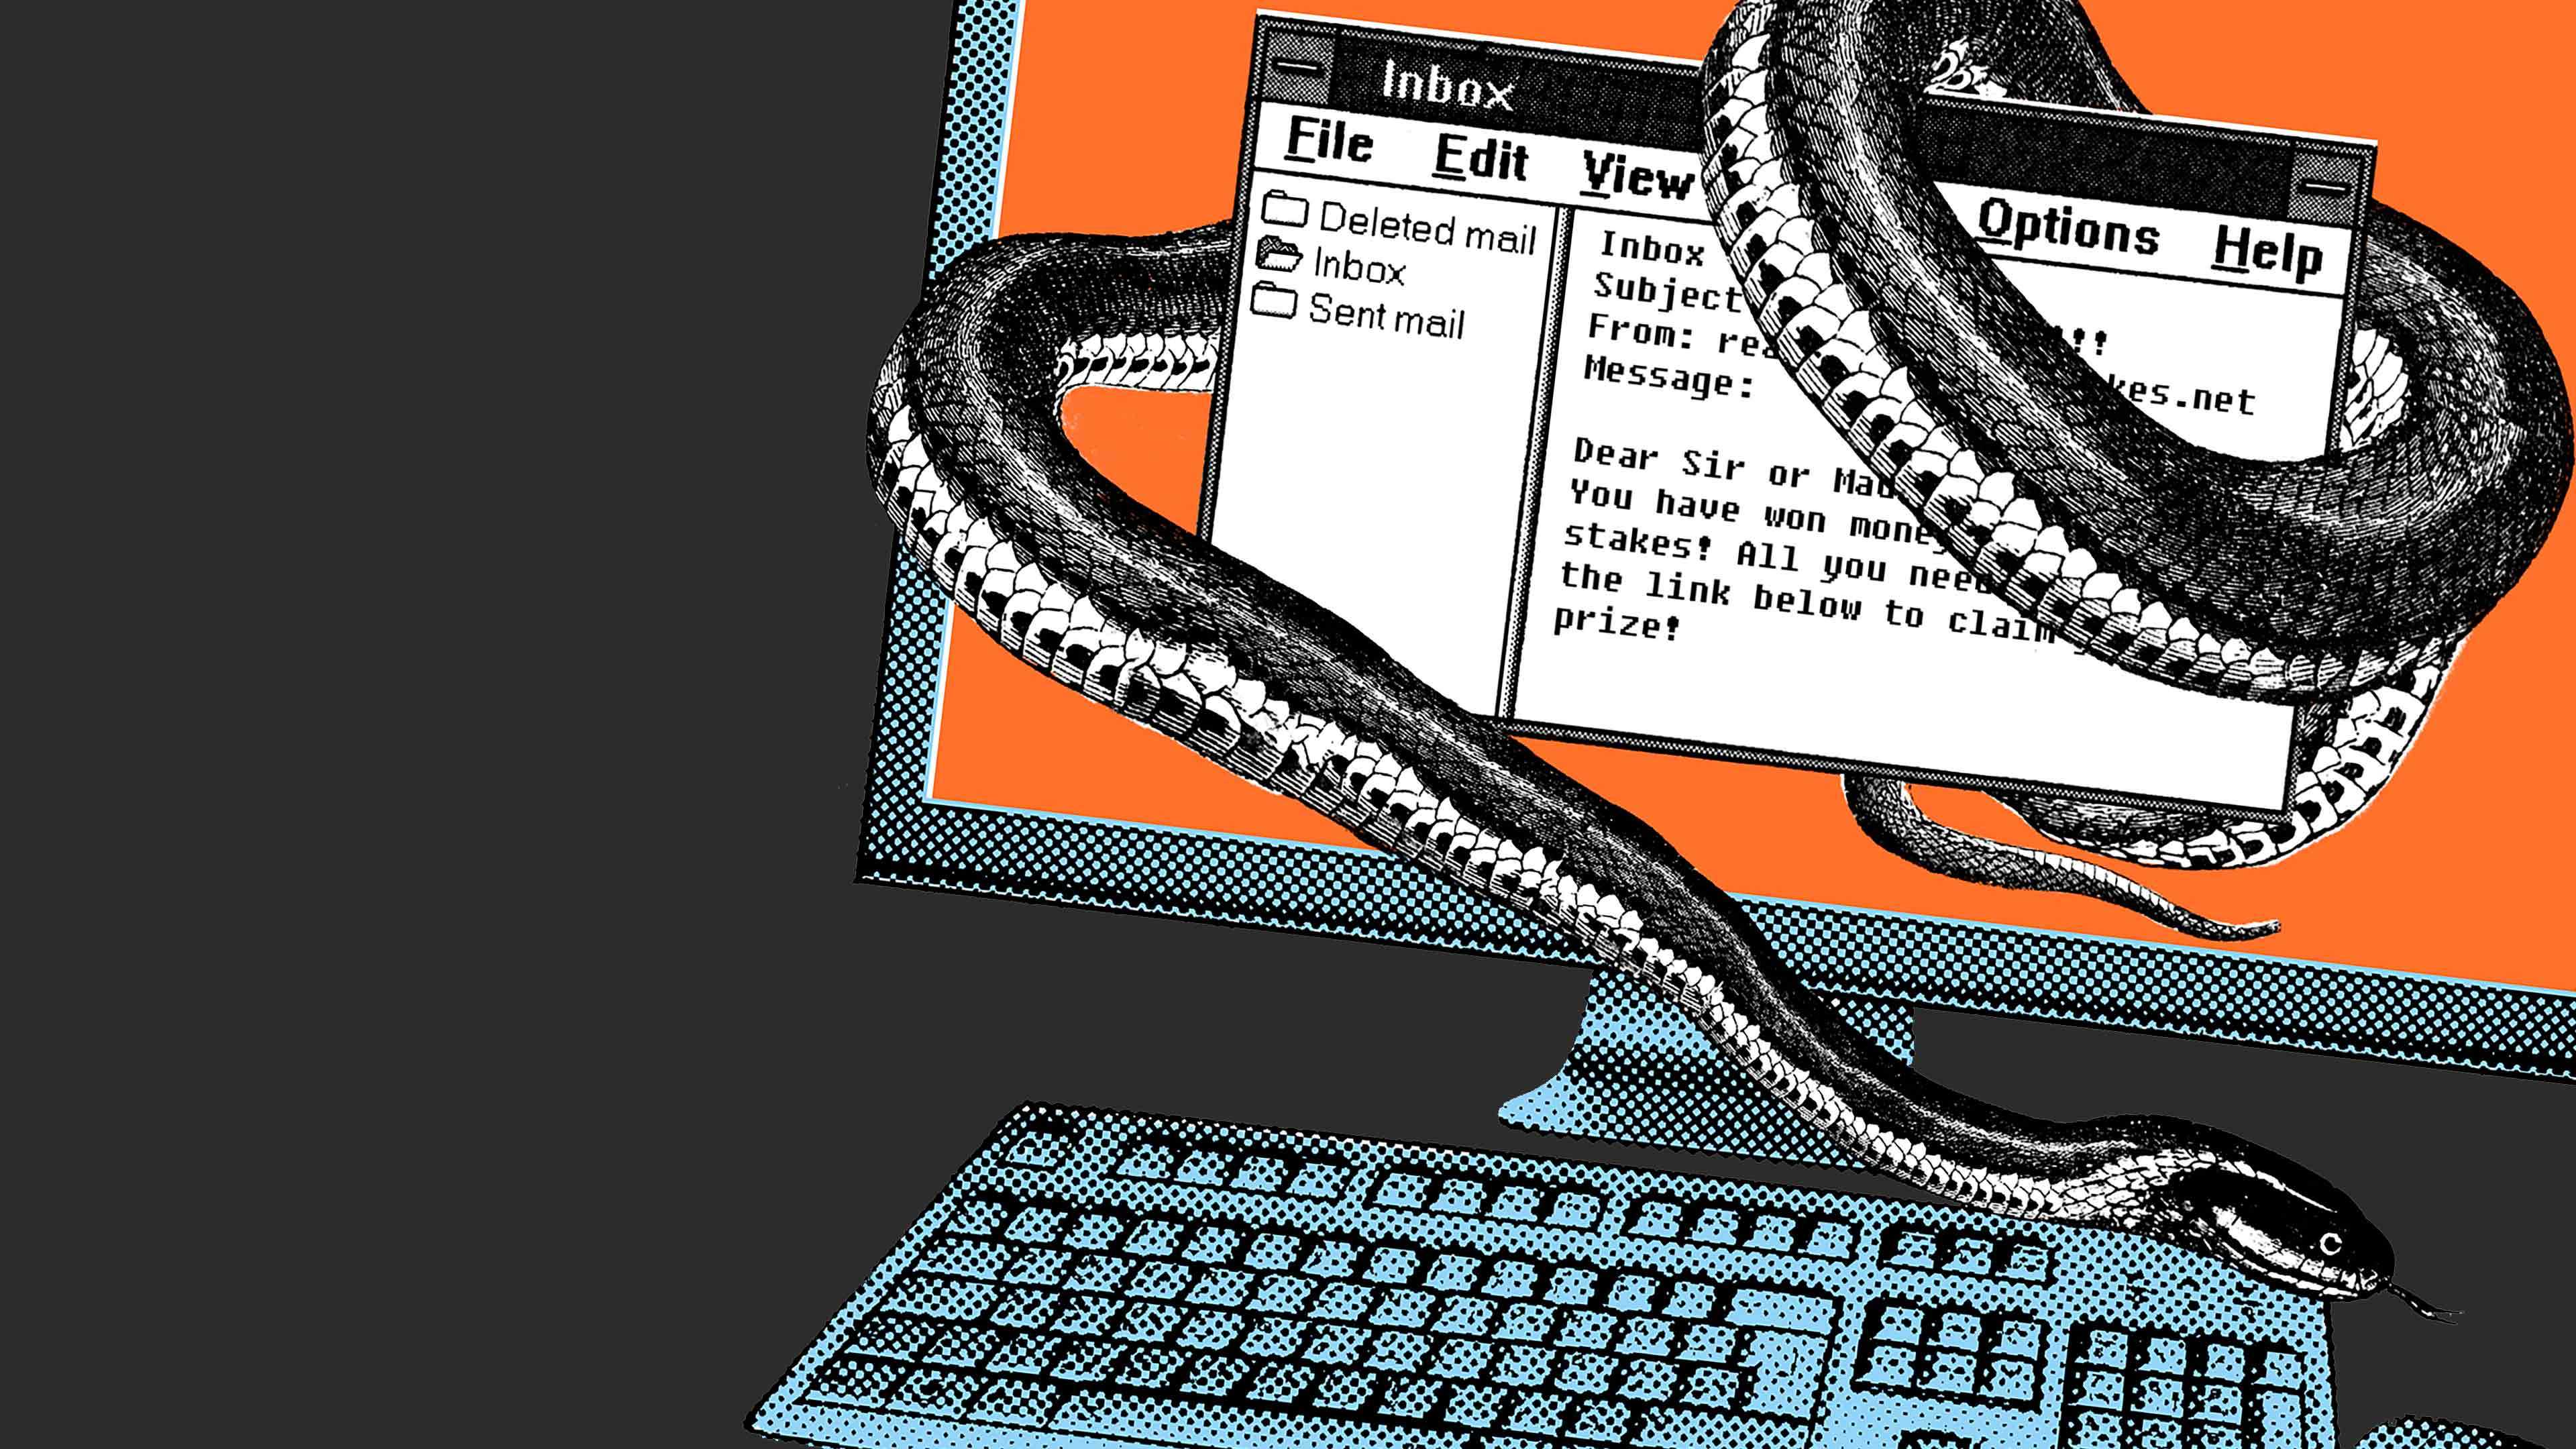 An illustration of a snake wrapping around an email inbox screen on a computer.